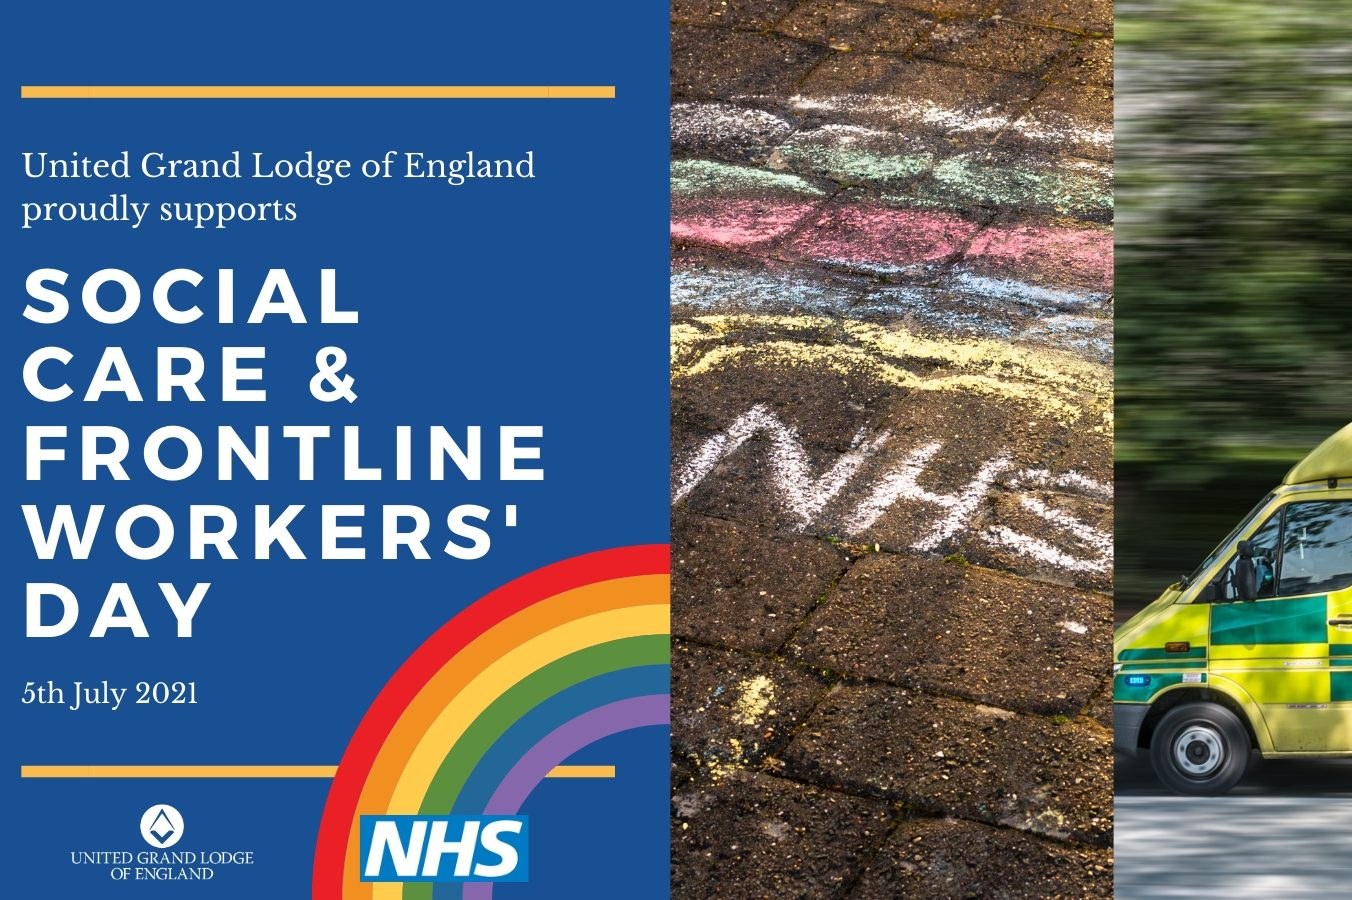 Freemasons Take Lead Role in NHS Frontline Workers' Day